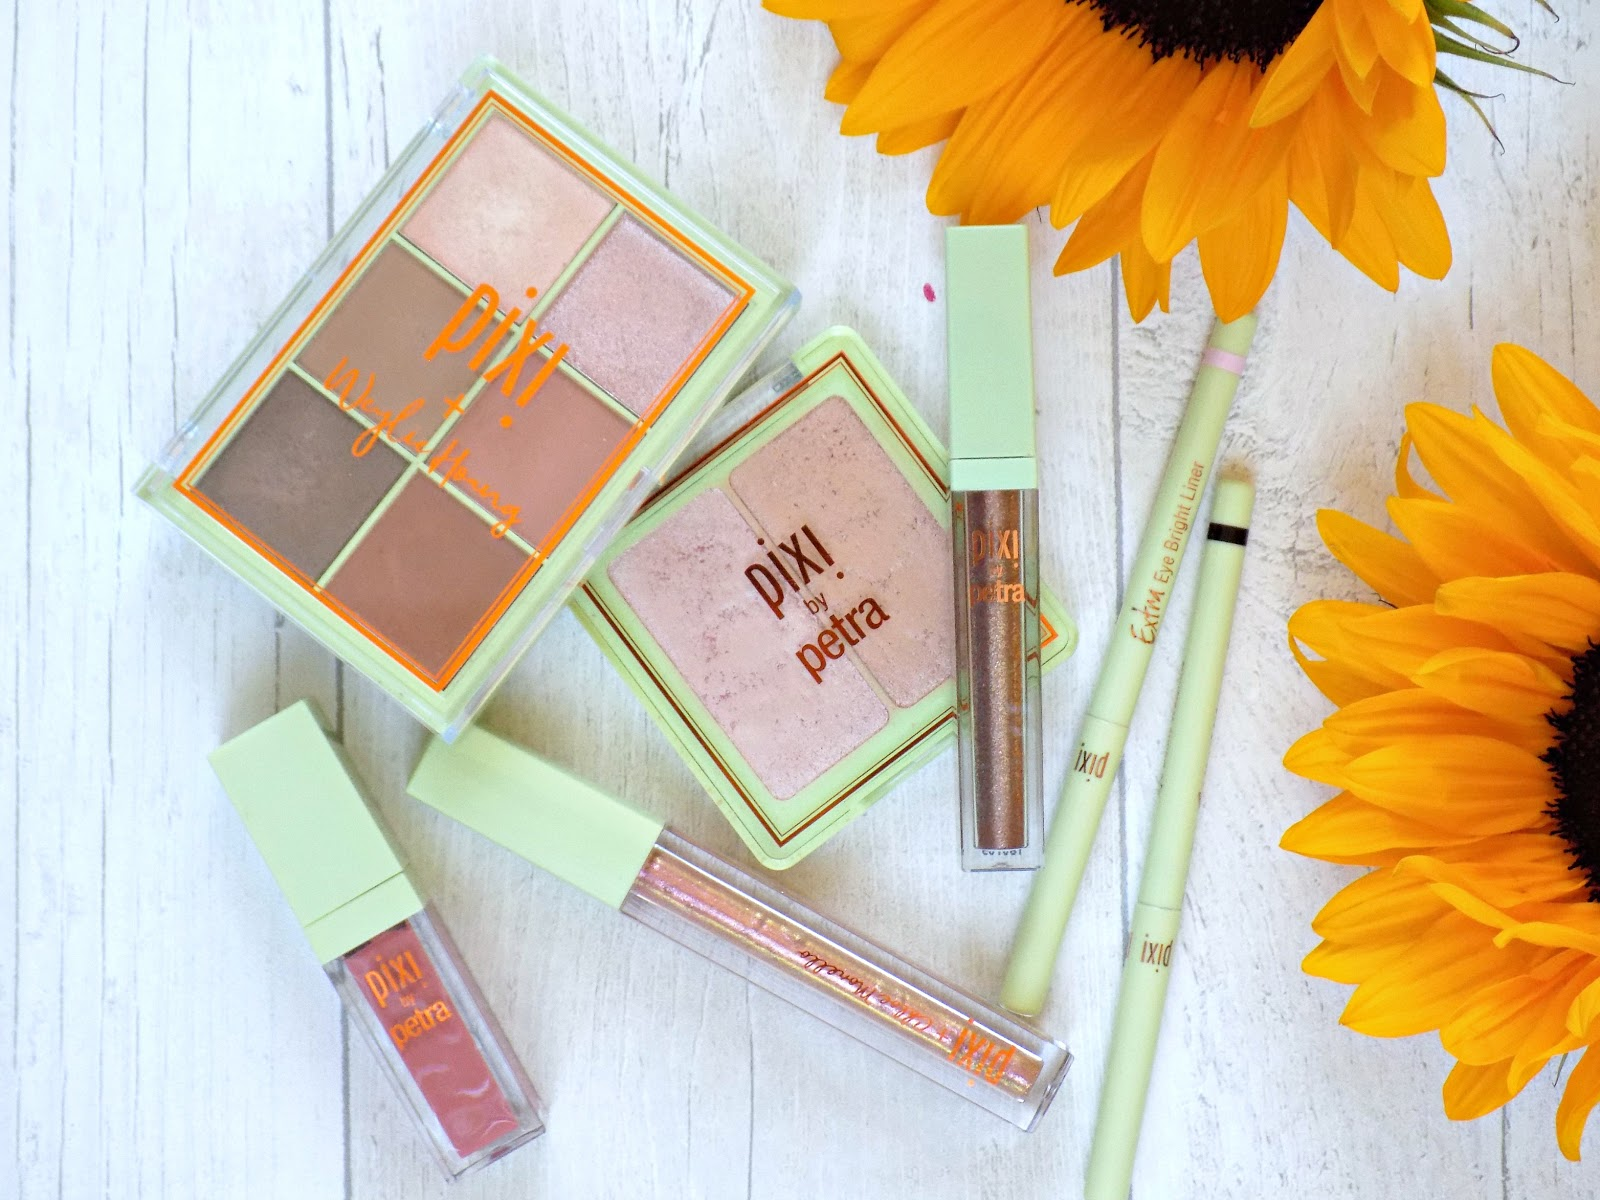 Pixi makeup products